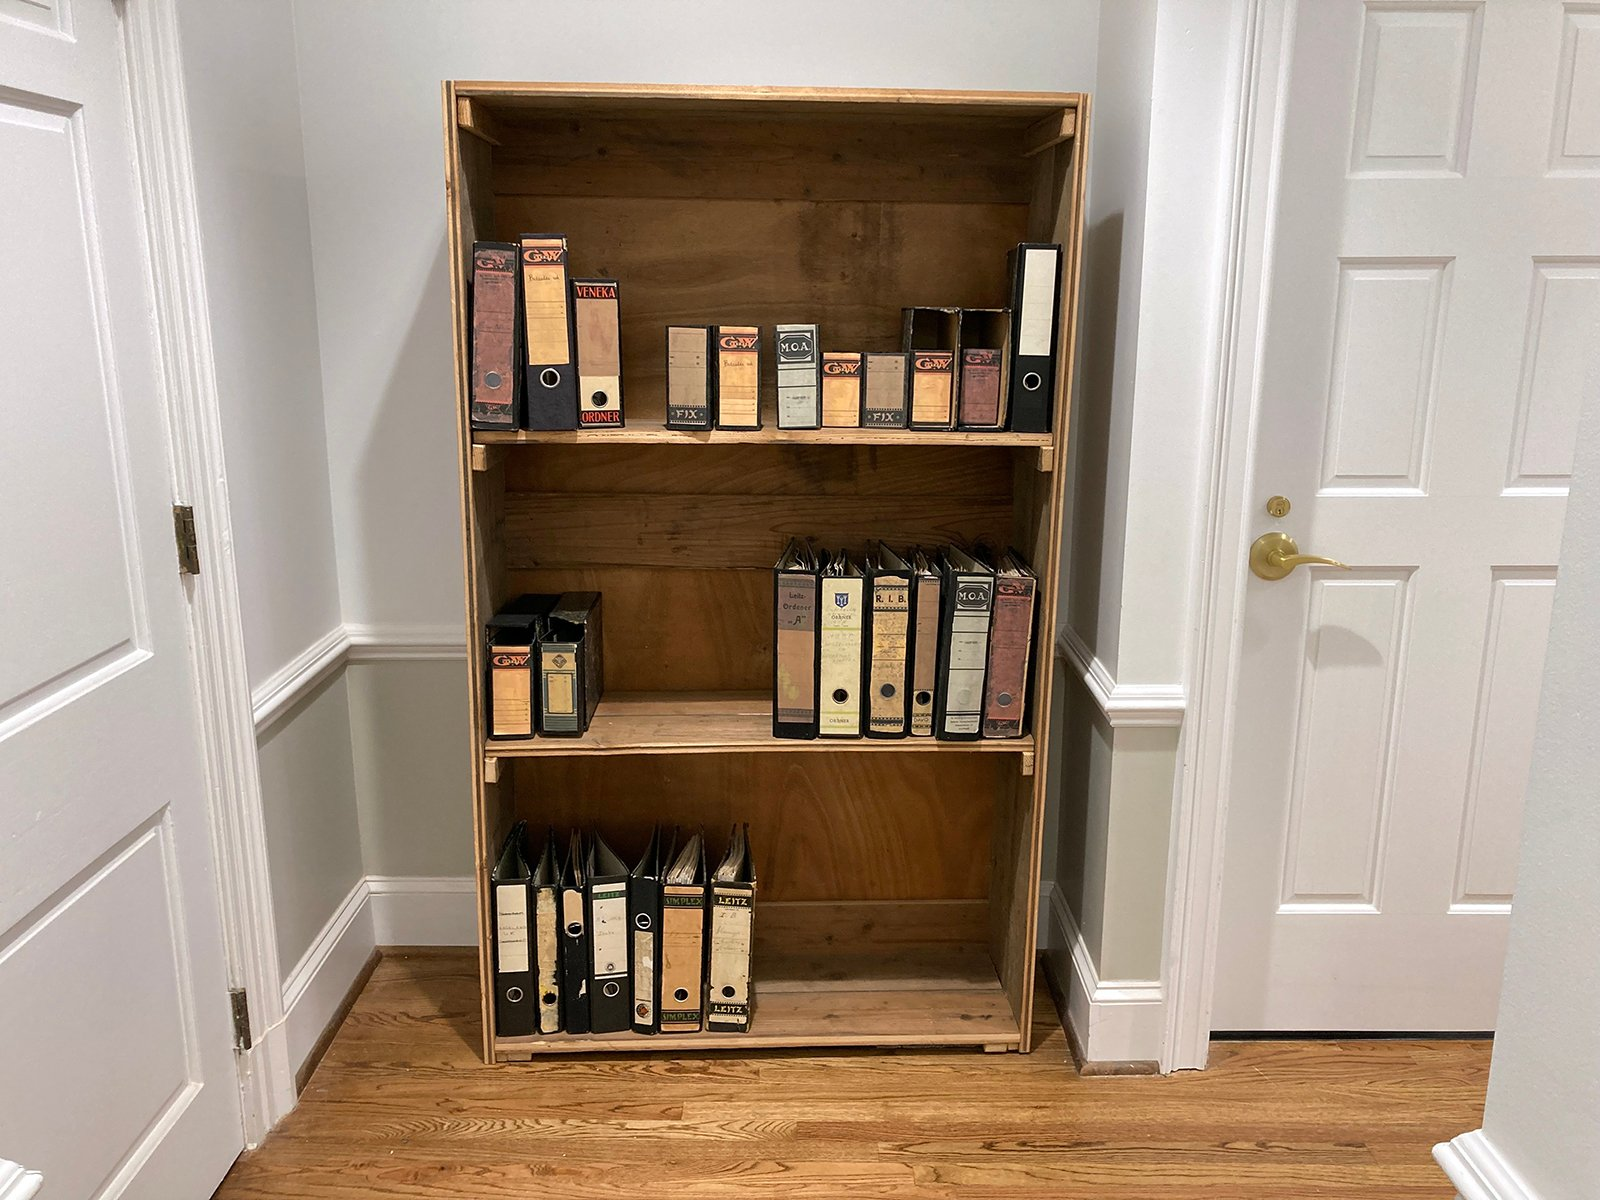 The Anne Frank Center, in Columbia, South Carolina, shows a recreation of the hidden bookshelf behind which was a door to the secret annex where Anne Frank and her family hid from 1942 to Aug. 4, 1944, when they were discovered and sent to concentration camps. Anne died of typhus at Bergen Belsen in 1945. RNS photo by Yonat Shimron